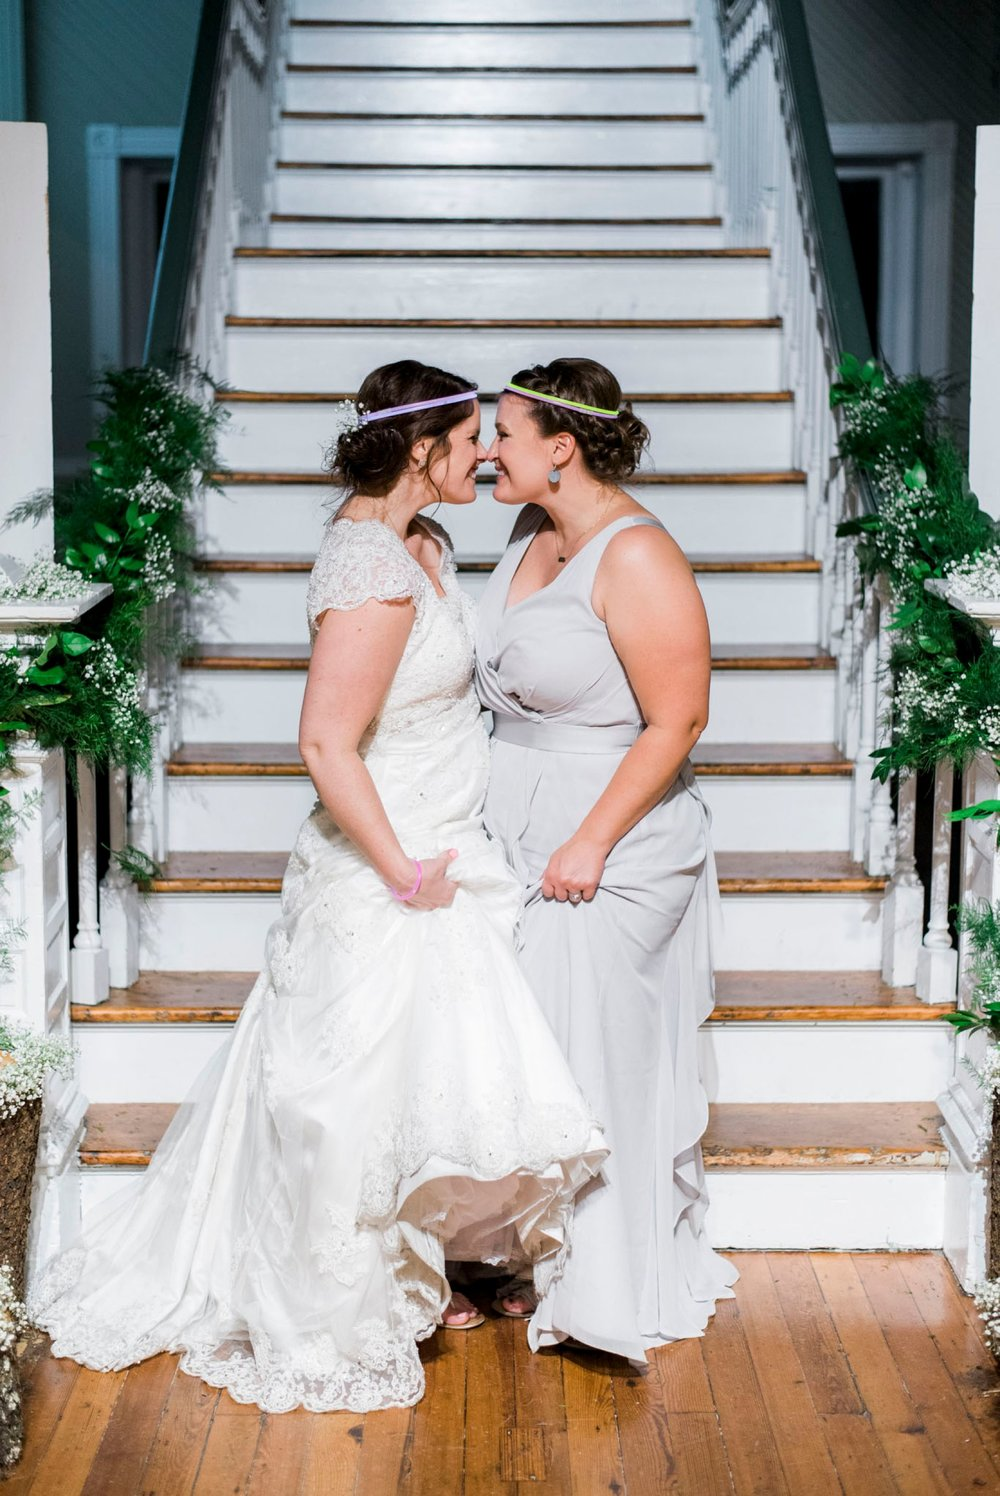 Trescaon8th_DowntownLynchburg_Virginiaweddingphotographer 97.jpg